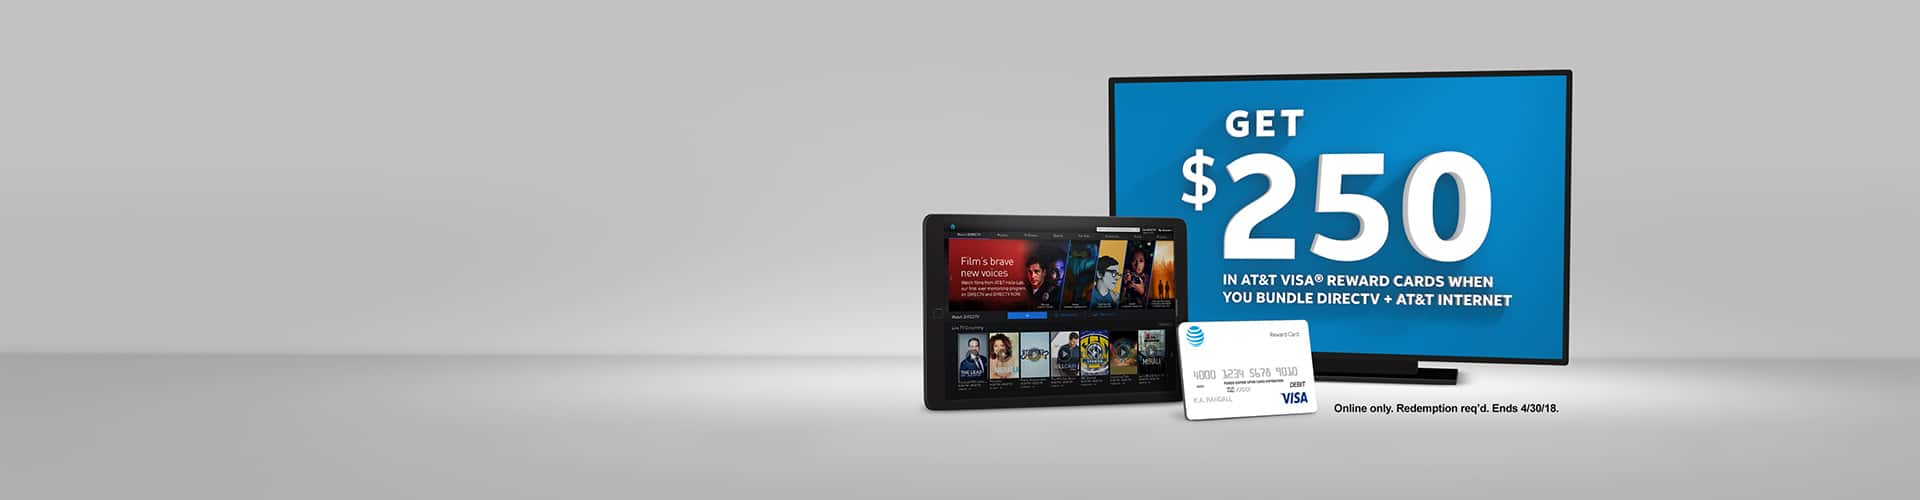 DIRECTV and AT&T Internet. $65/mo for 12 mos (w/24 mo agrmt & autopay credit) + $250 reward card